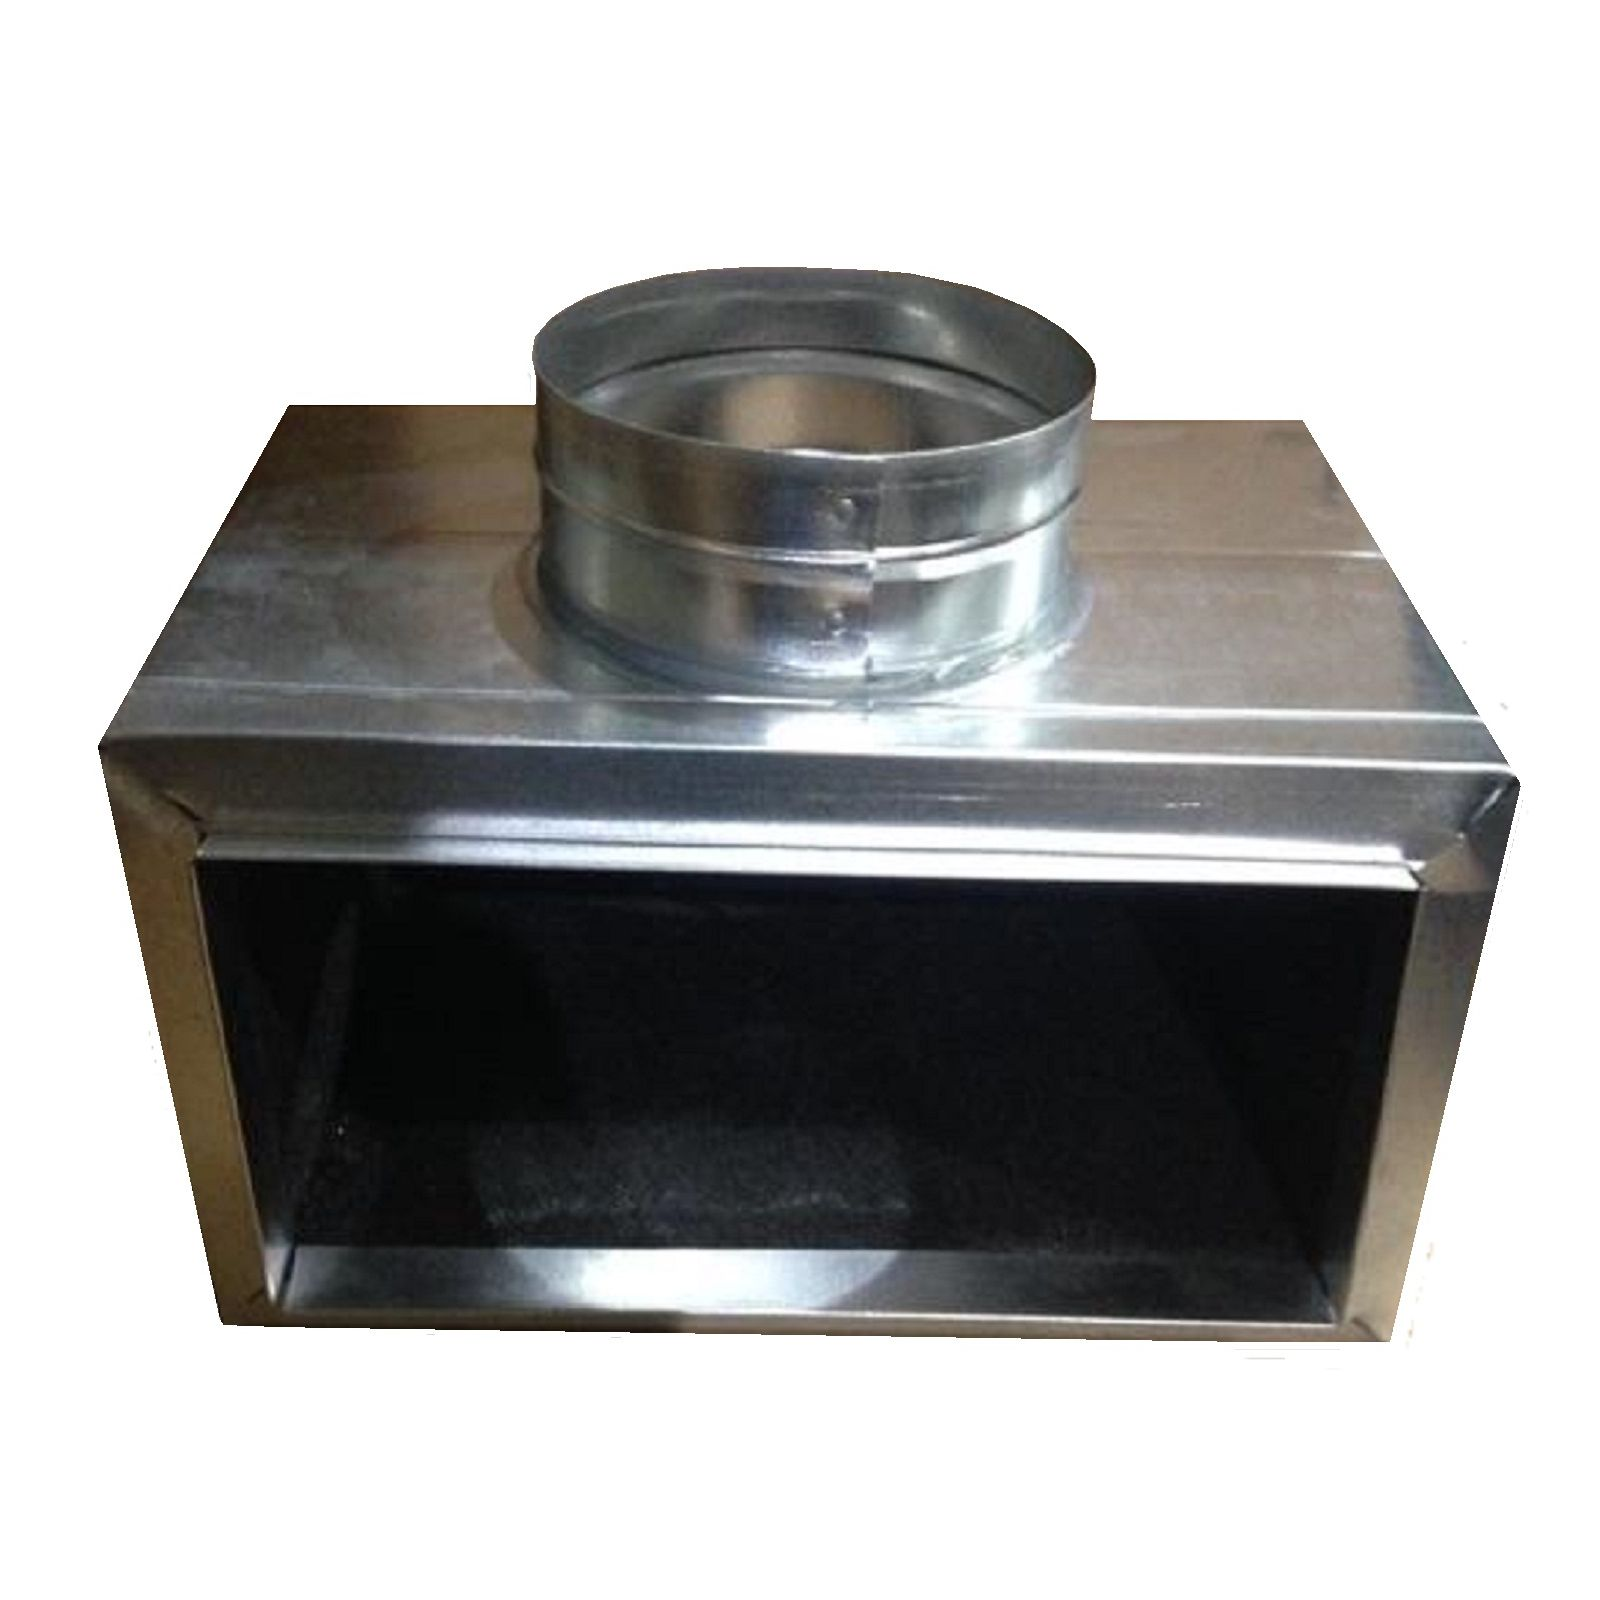 "Snap-Rite 08X04X053109NF - Side-Out Box Non-Flanged 9"" Deep, 08"" x 04"" x 05"" - R4"